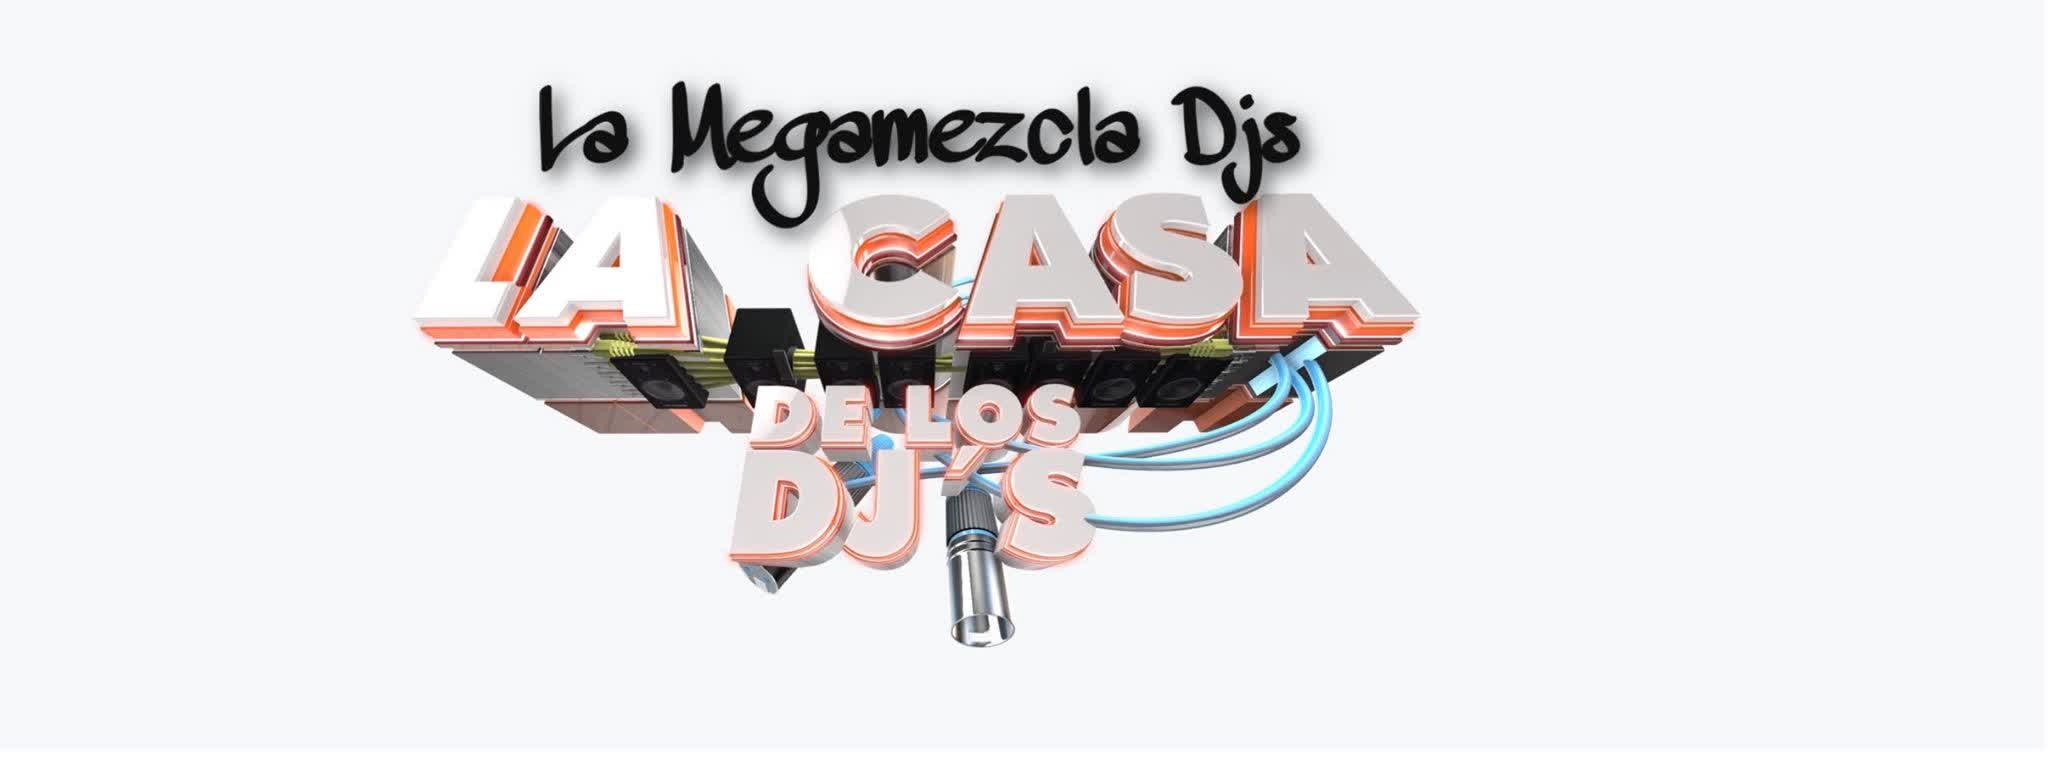 Grupo Firme ft Marca Mp   El Guero (Clean) [ Intro  Out] 75 Bpm lamegamezcladjs.com